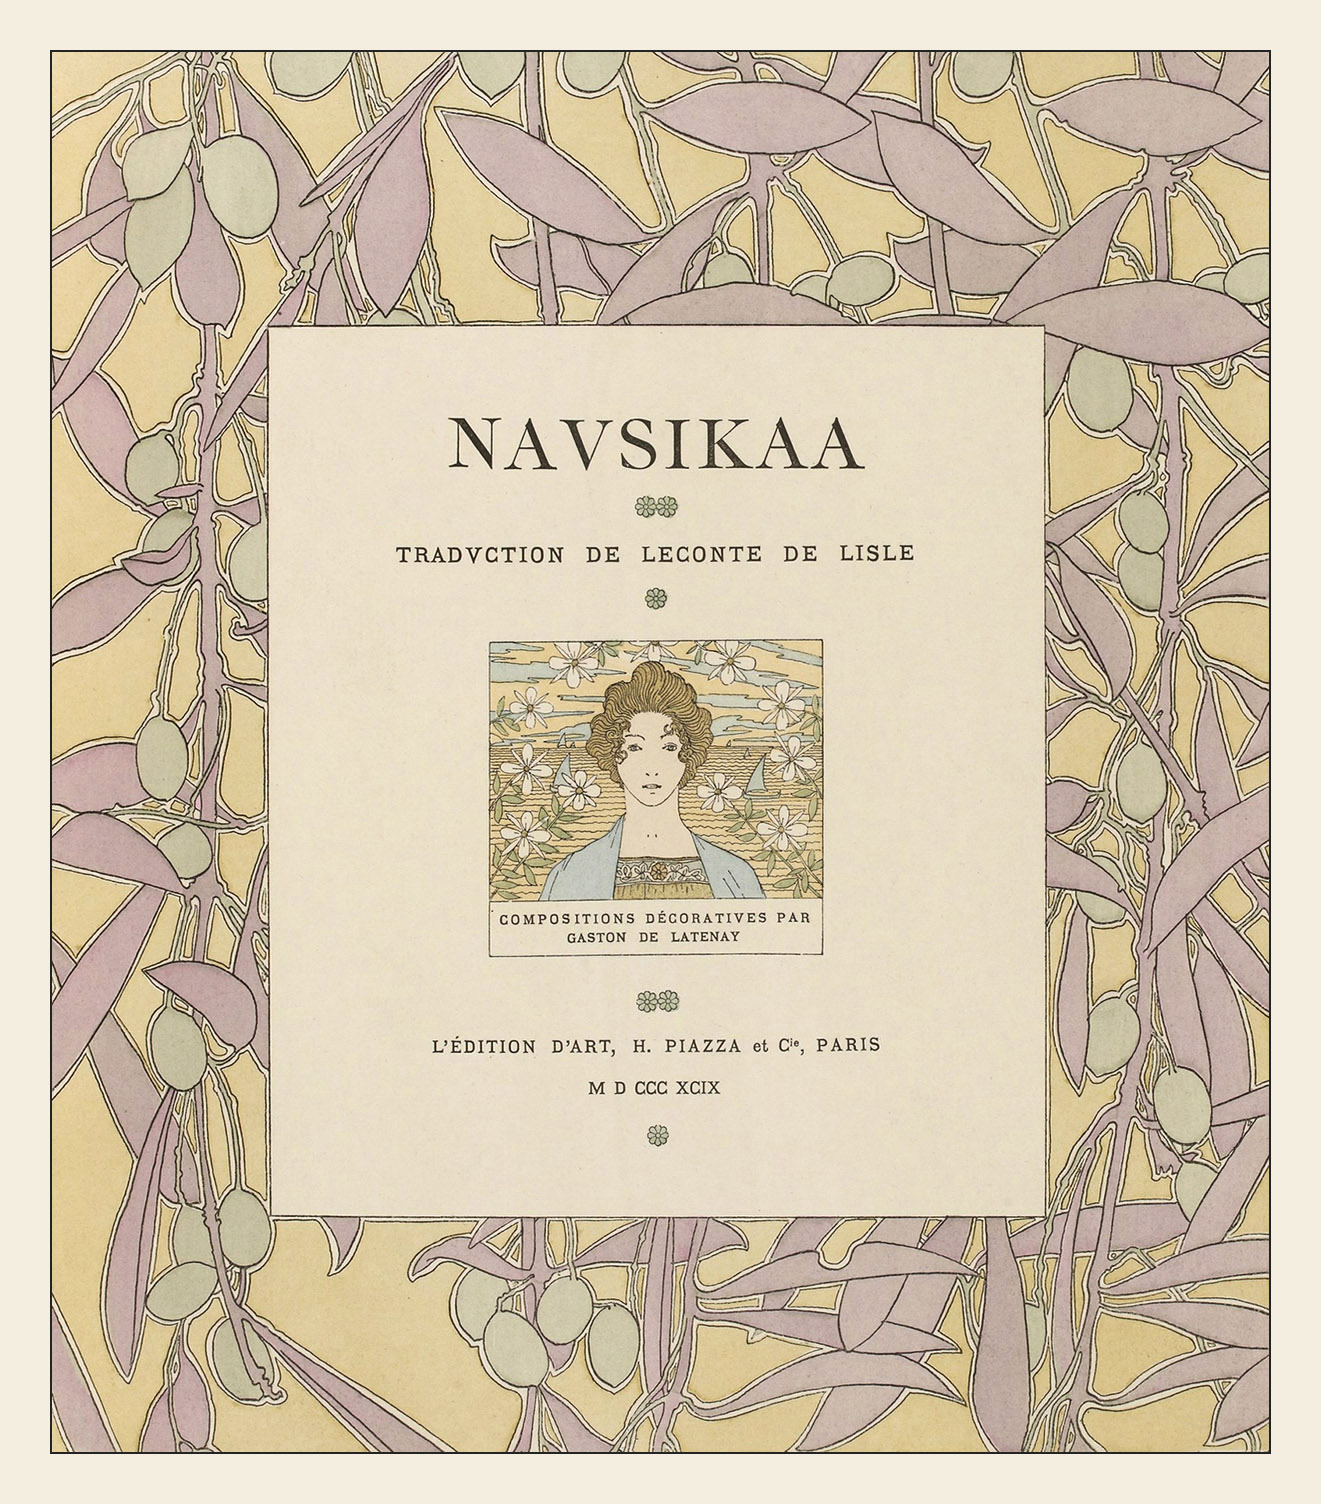 Gaston de Latenay, Nausikaa